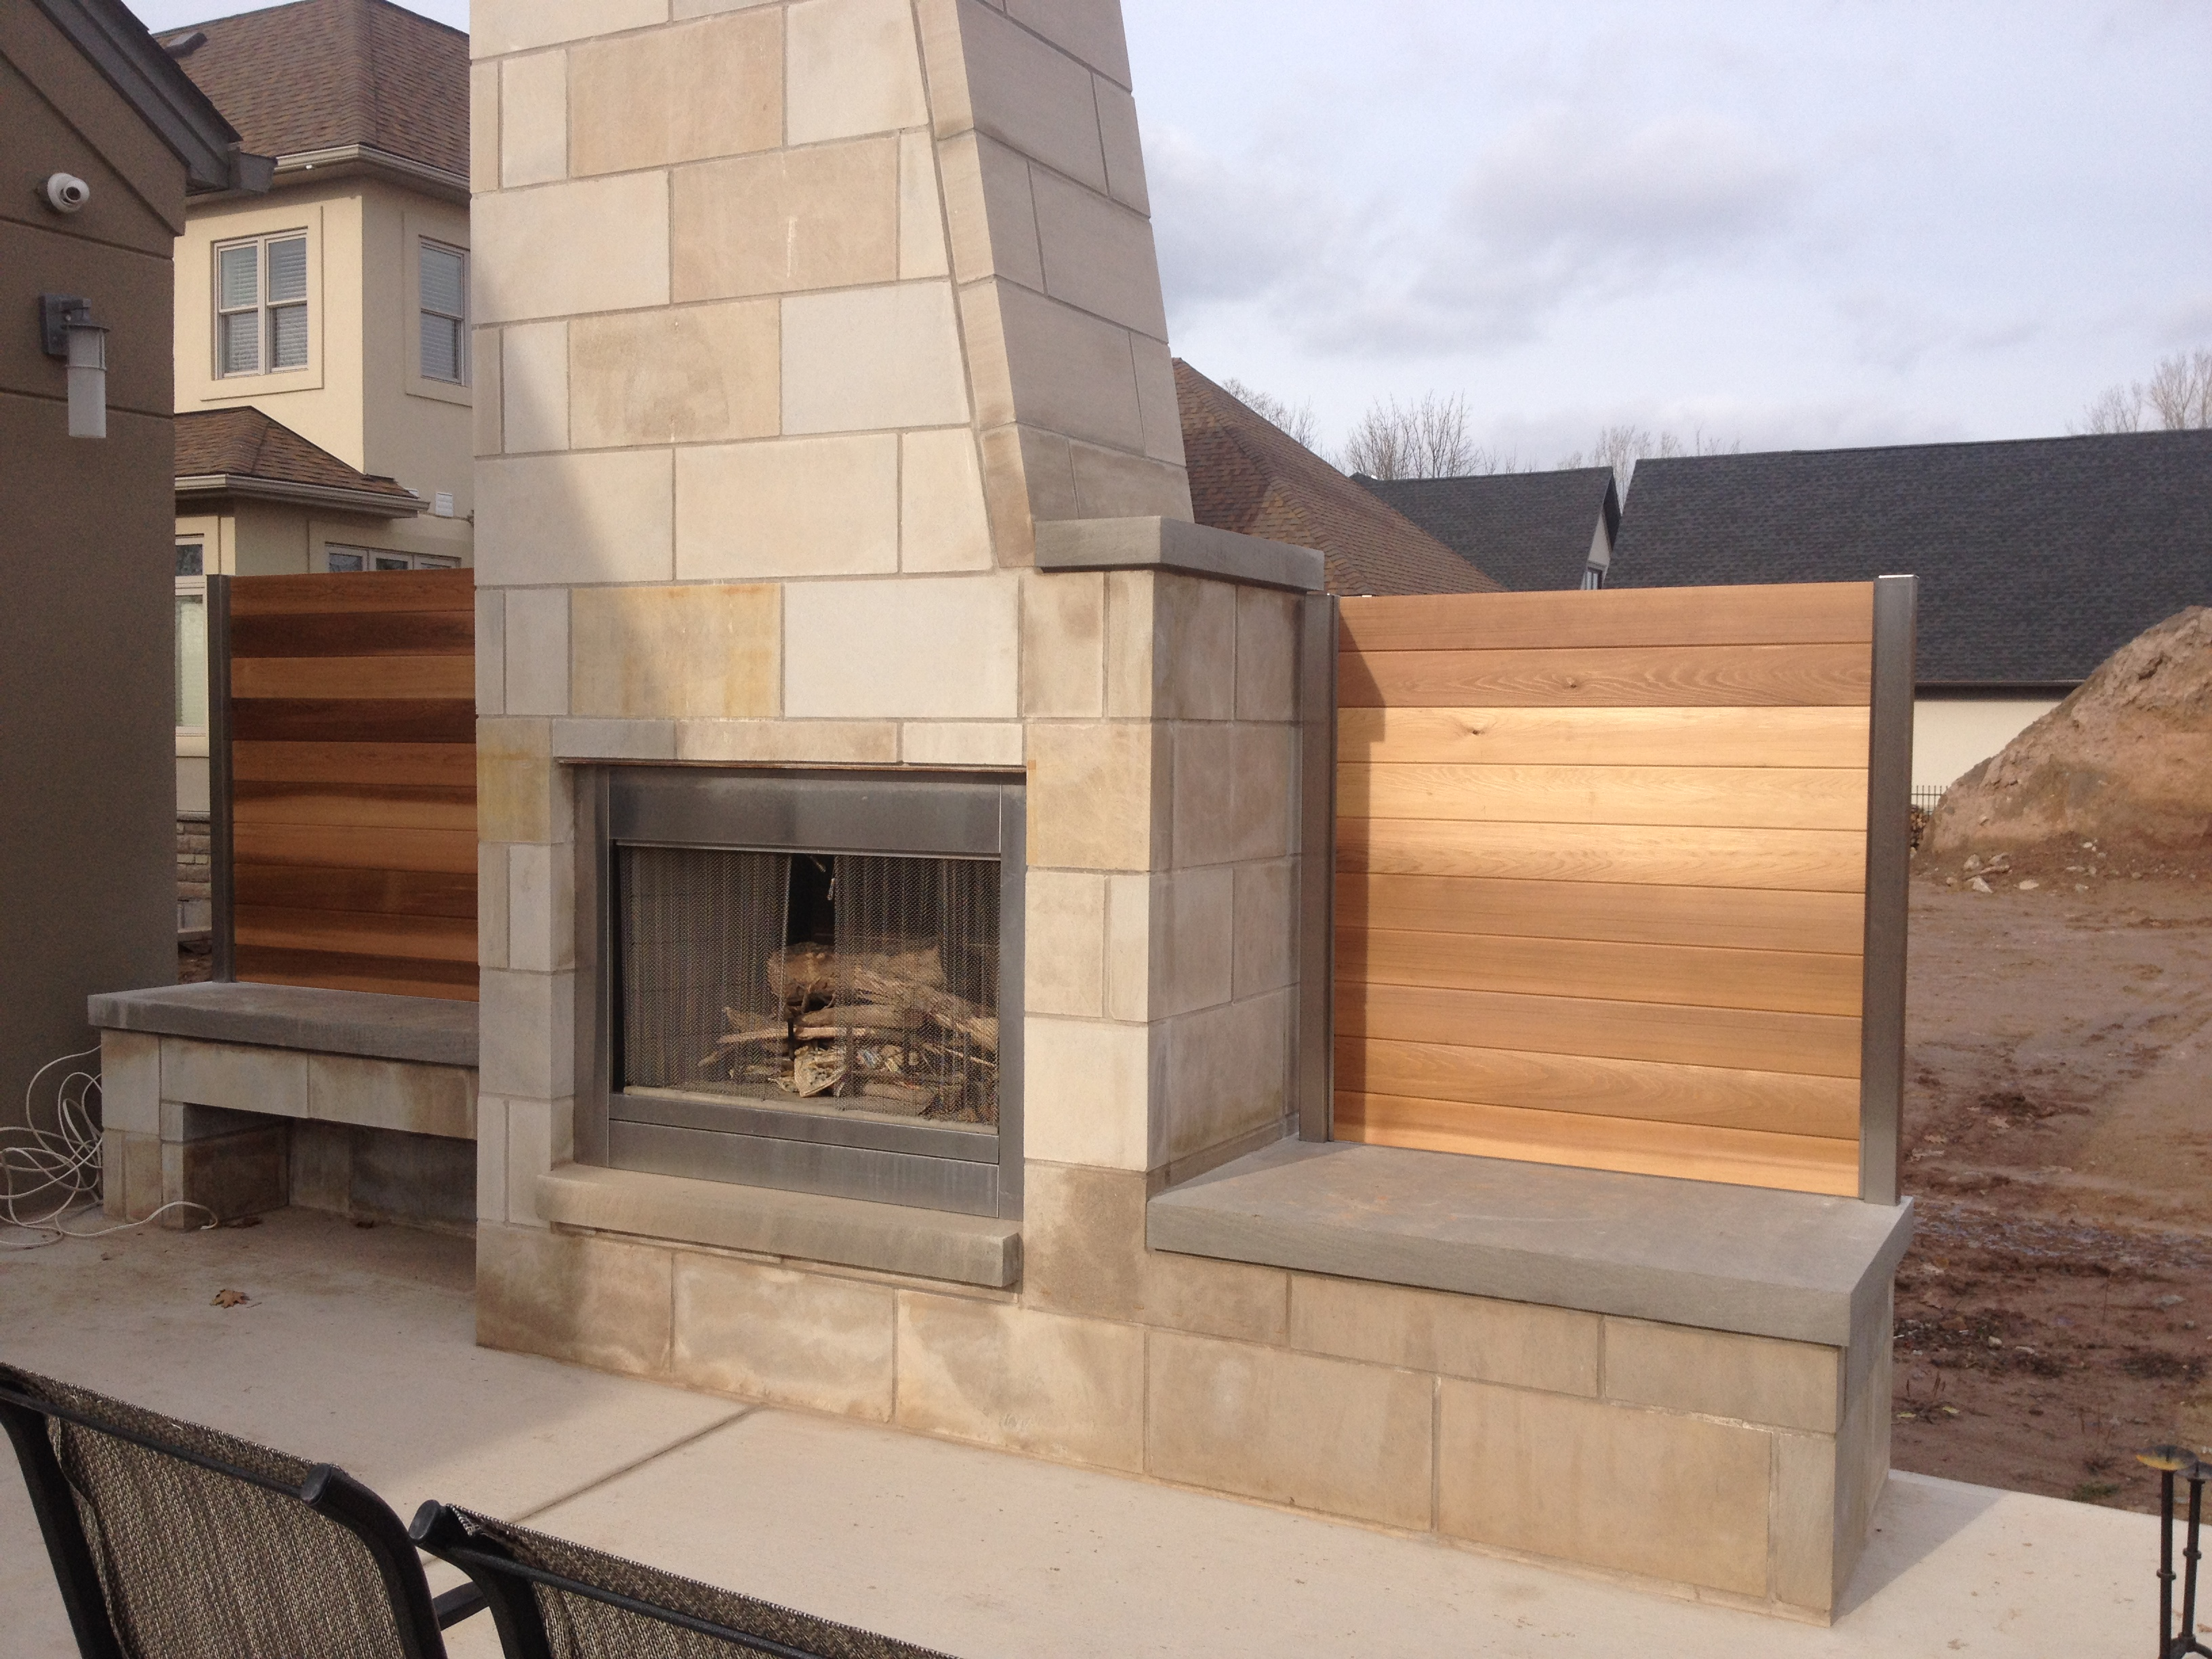 Fireplace Border & Cedar Board Wall